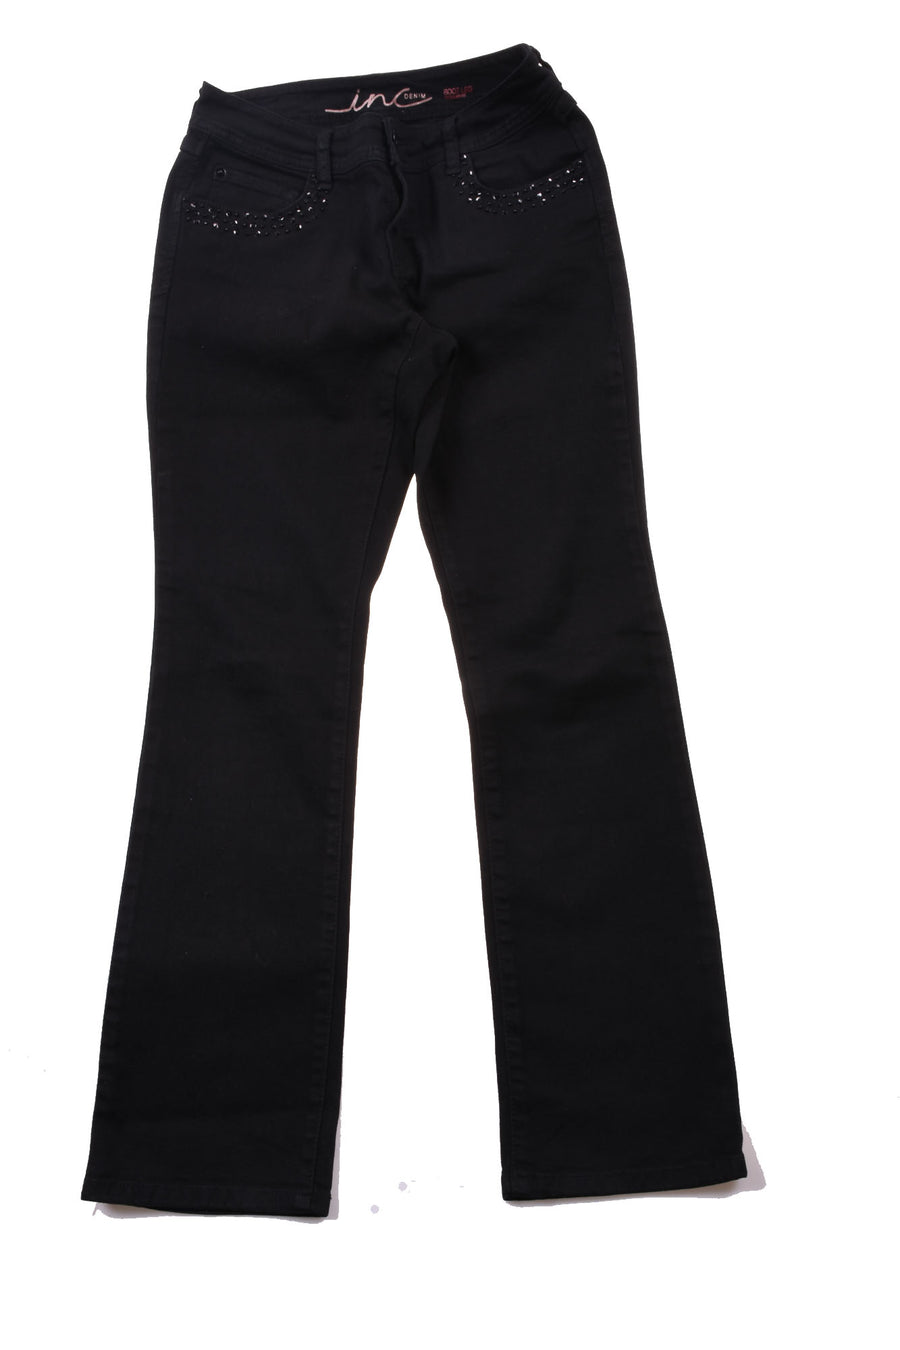 USED INC Women's Pants 6 Black